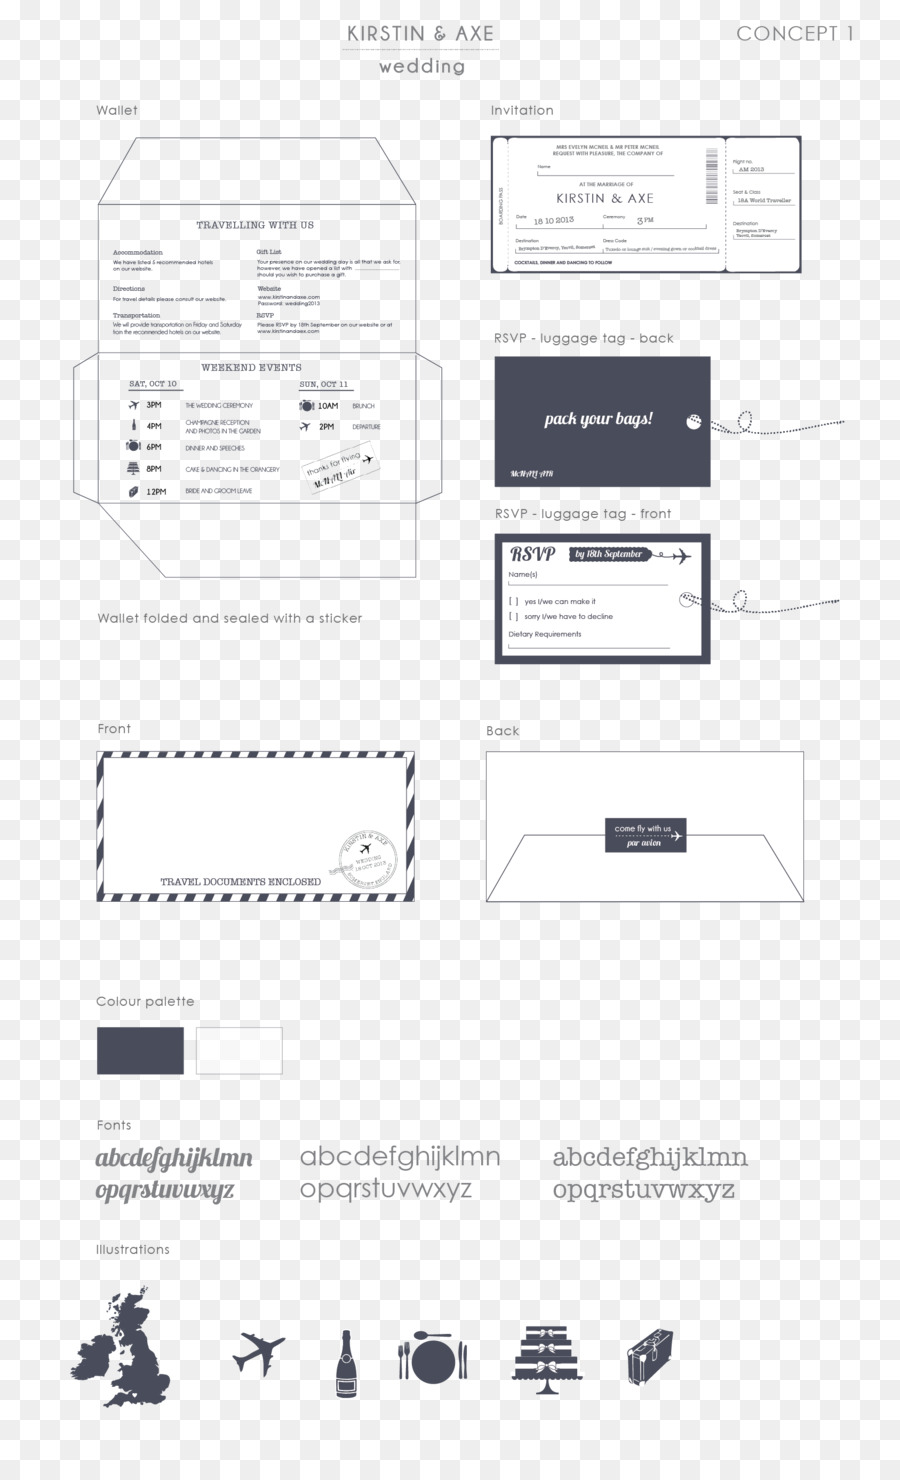 Wedding invitation Paper Map Boarding pass - plane thicket ...